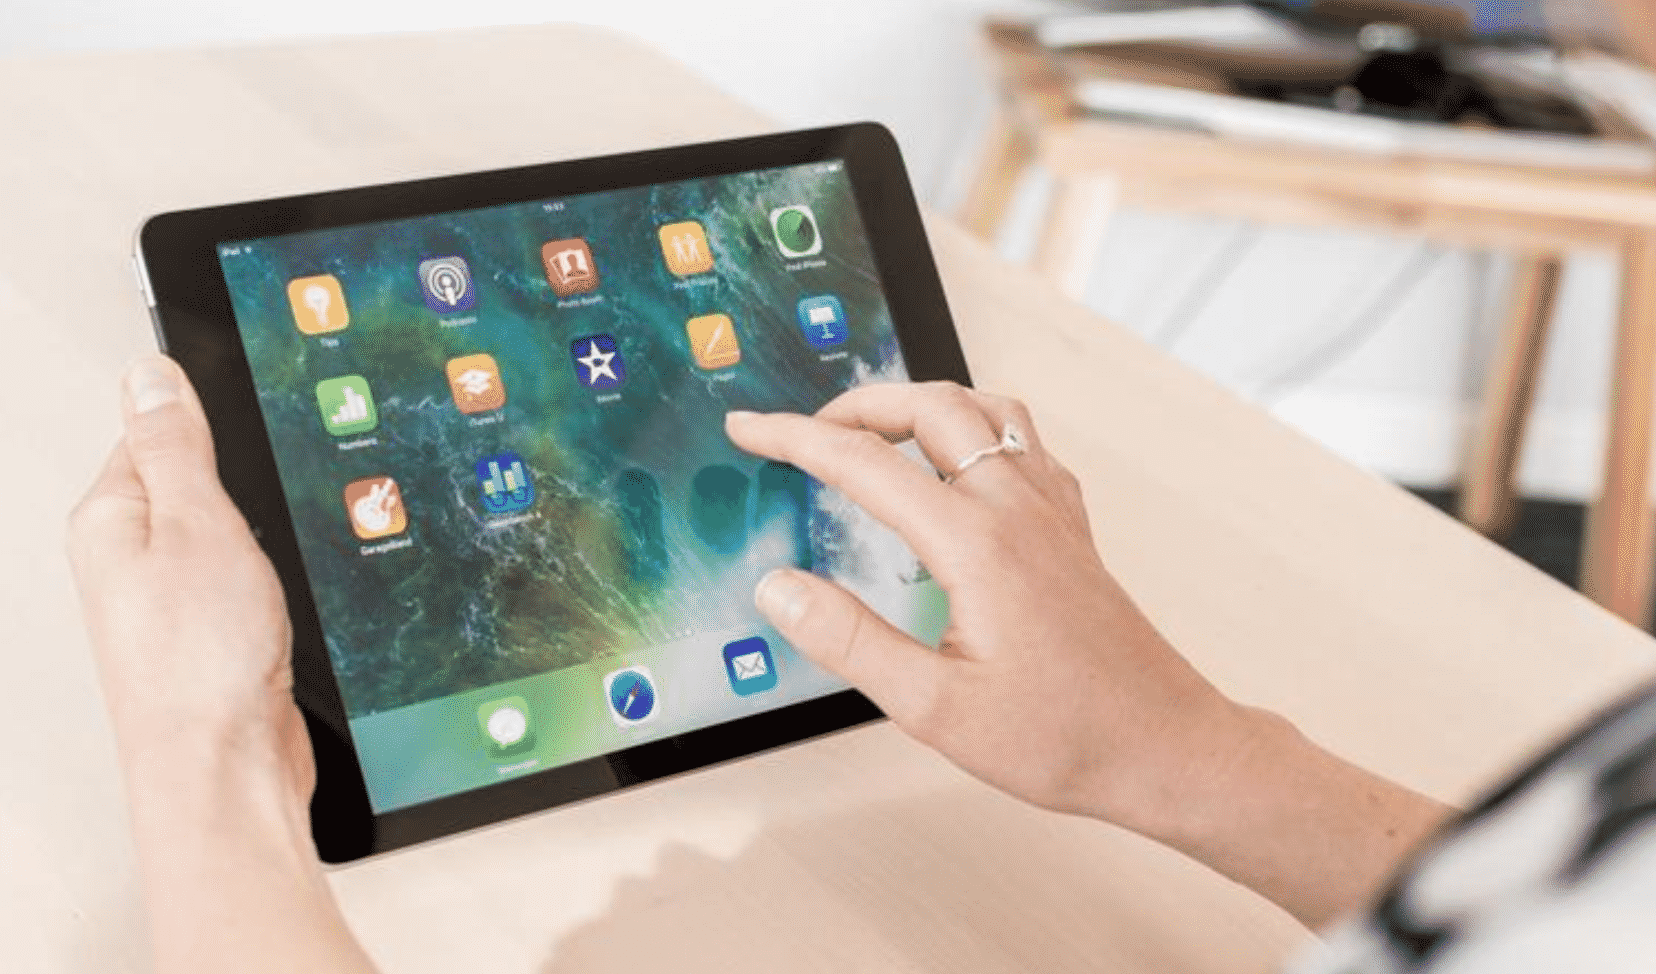 How to connect iPad to the internet without Wi-Fi